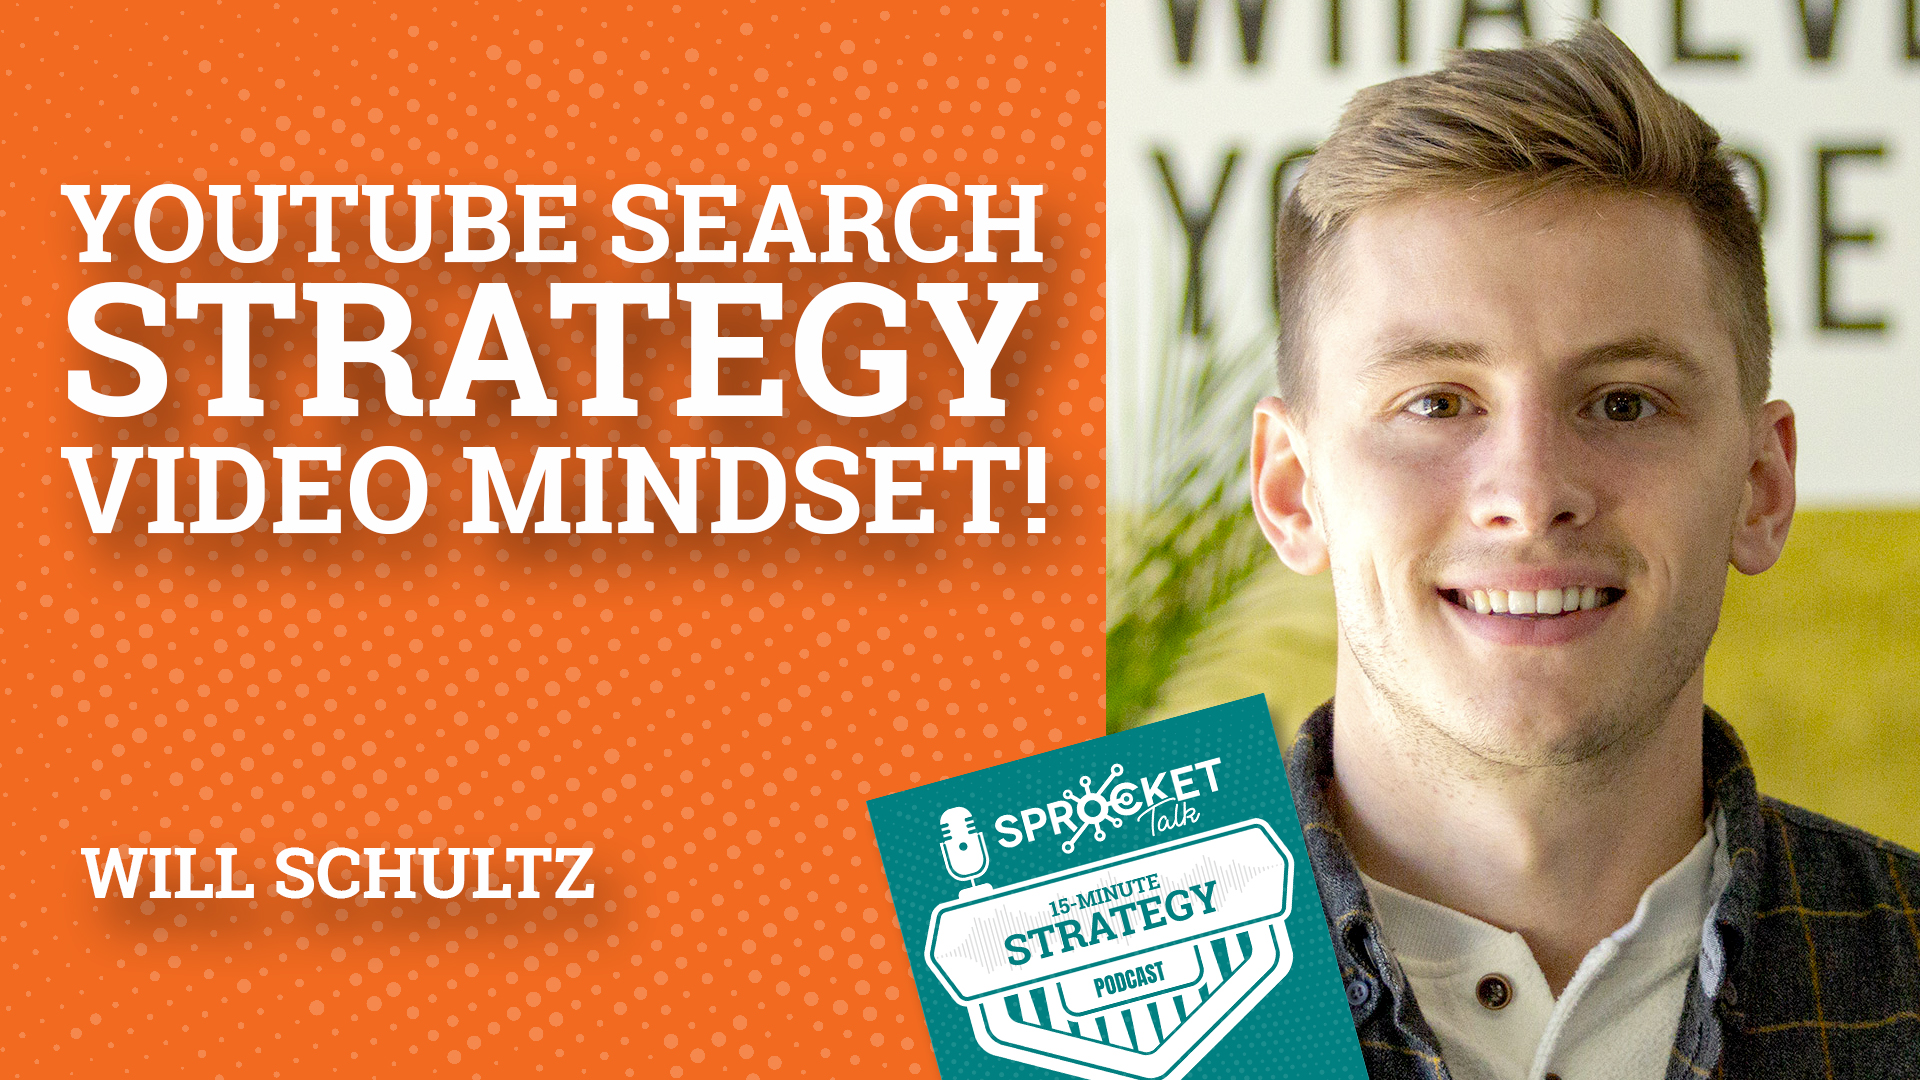 Will Schultz: YouTube Business Mindsets & Strategies That Move The Needle